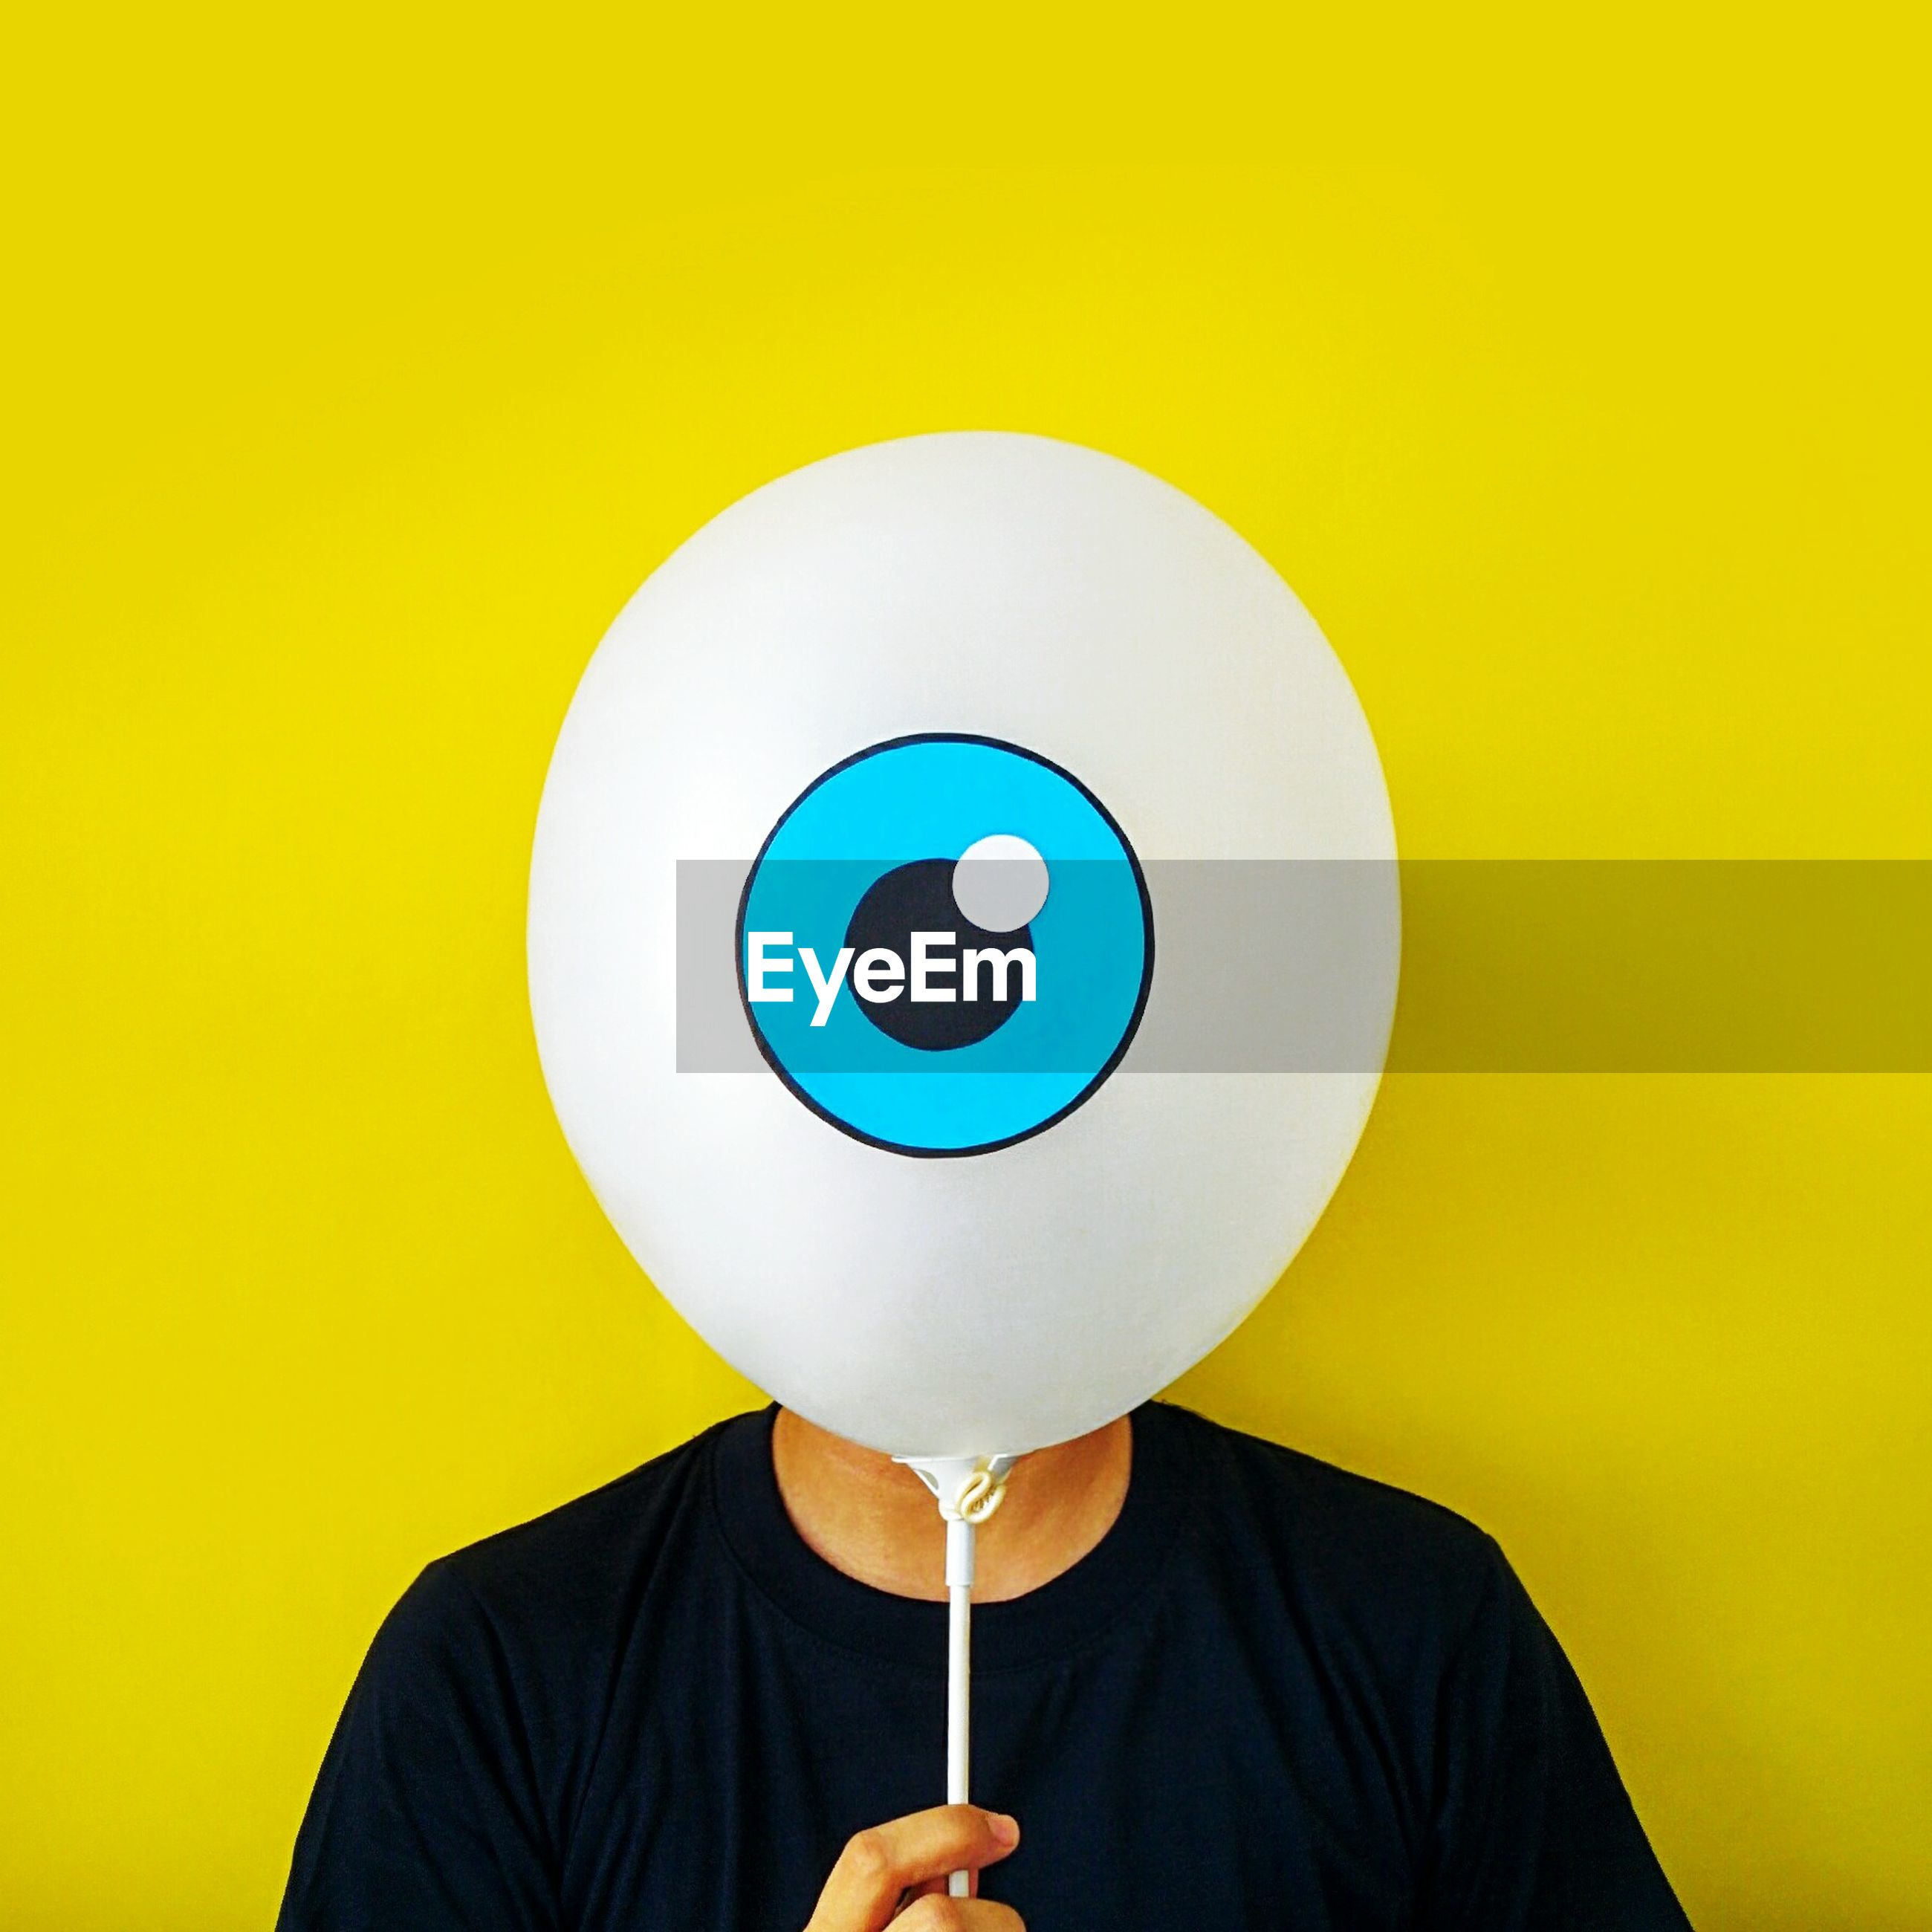 Man hiding face behind balloon against yellow background